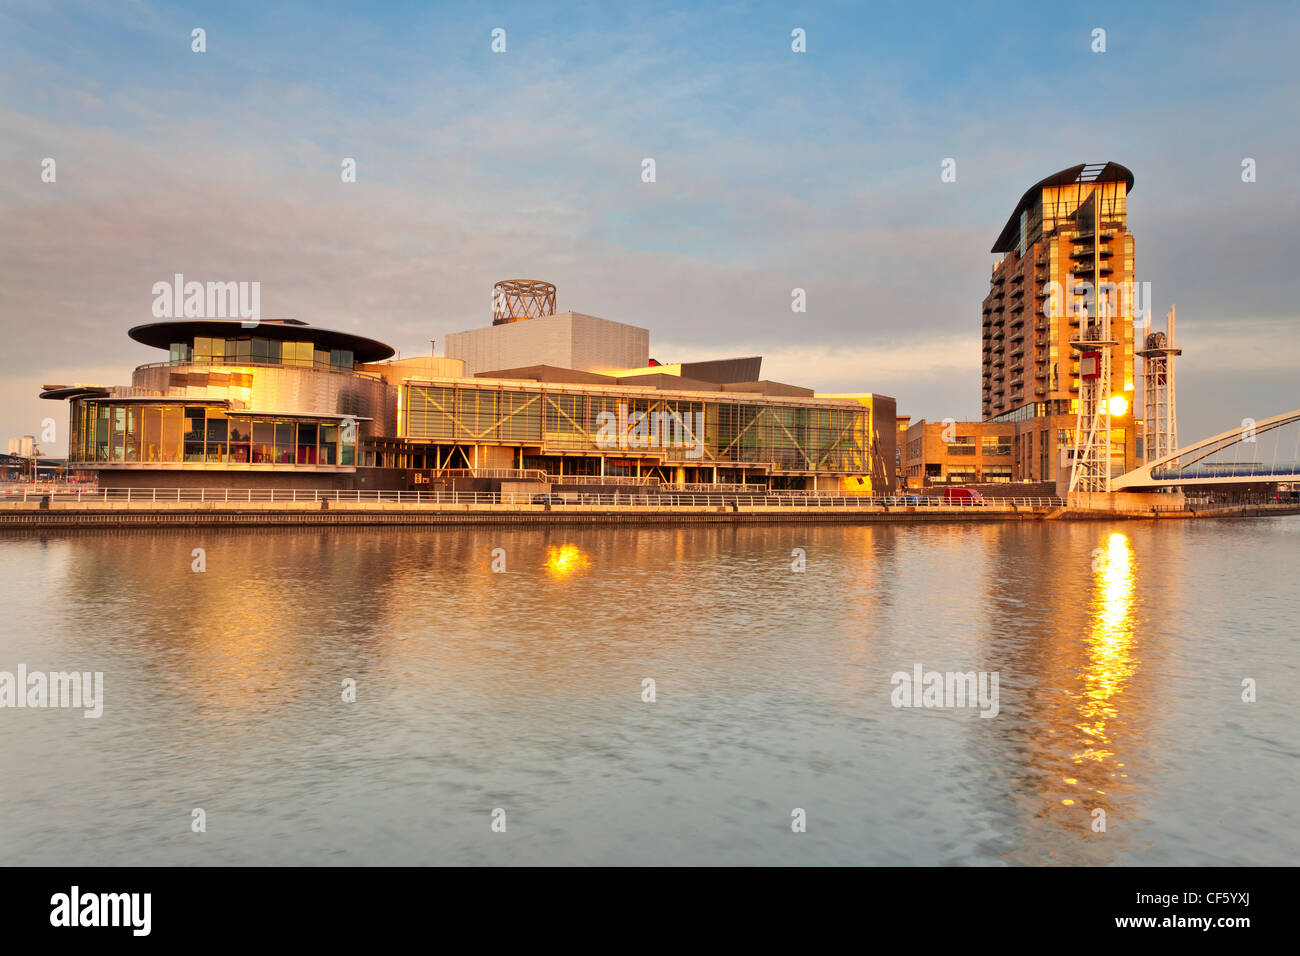 The Lowry at the heart of the redeveloped Salford Quays in Greater Manchester. The Lowry is a landmark building - Stock Image